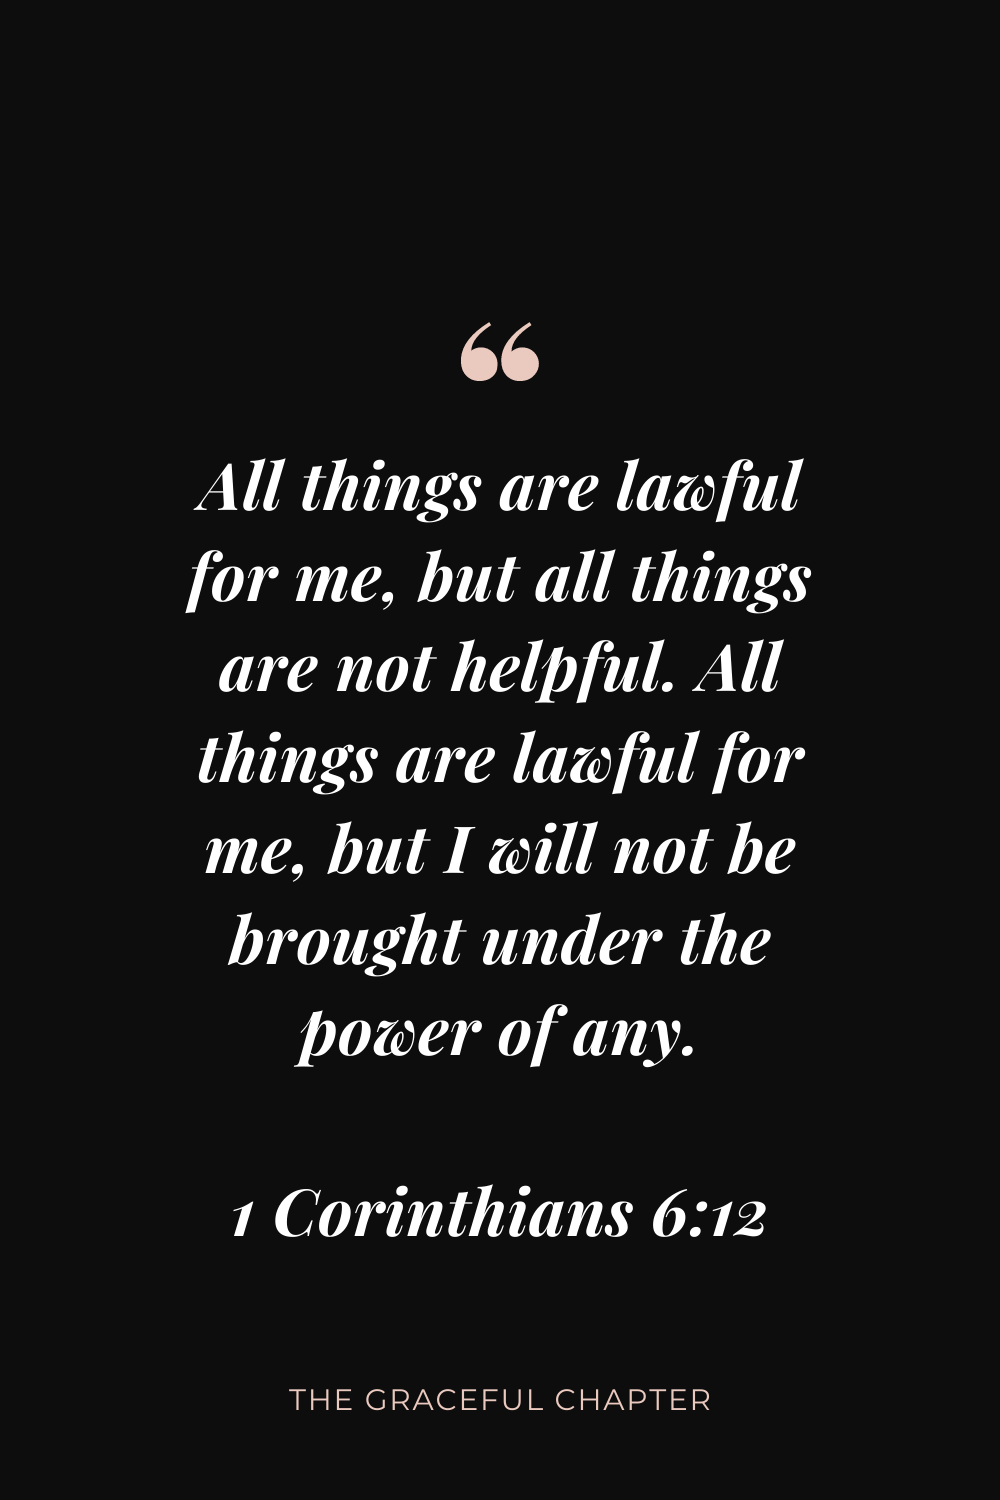 All things are lawful for me, but all things are not helpful. All things are lawful for me, but I will not be brought under the power of any. 1 Corinthians 6:12